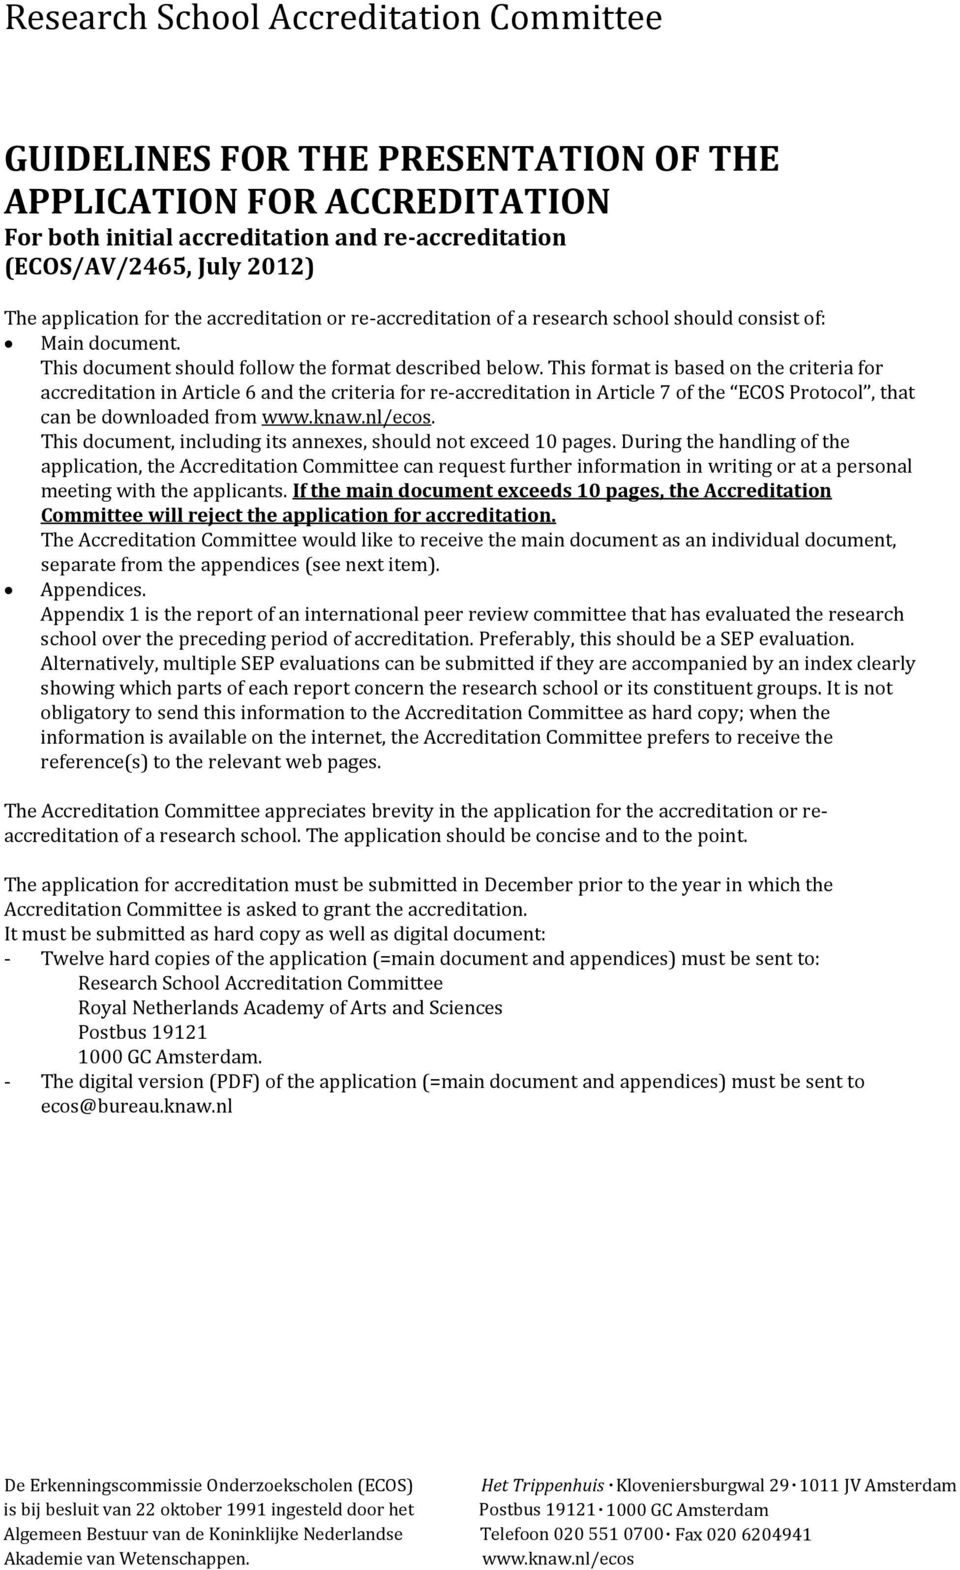 This format is based on the criteria for accreditation in Article 6 and the criteria for re-accreditation in Article 7 of the ECOS Protocol, that can be downloaded from www.knaw.nl/ecos.